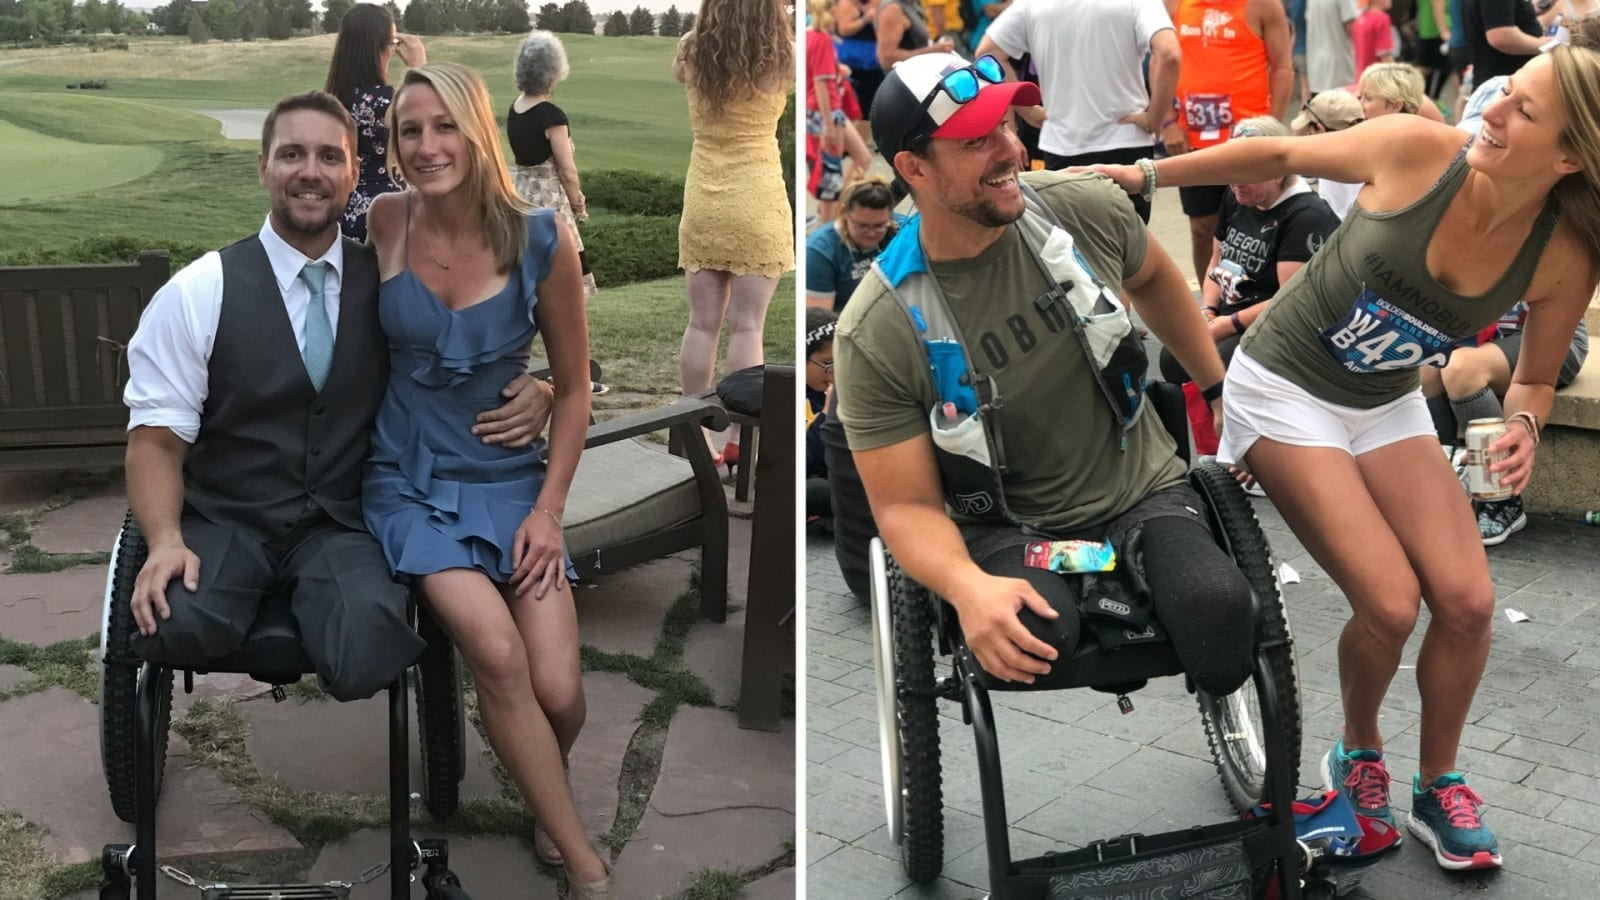 Amputee Finds Love With The Woman He Was Meant To Go On A Date With The Day He Lost His Limbs In Horror Car Crash